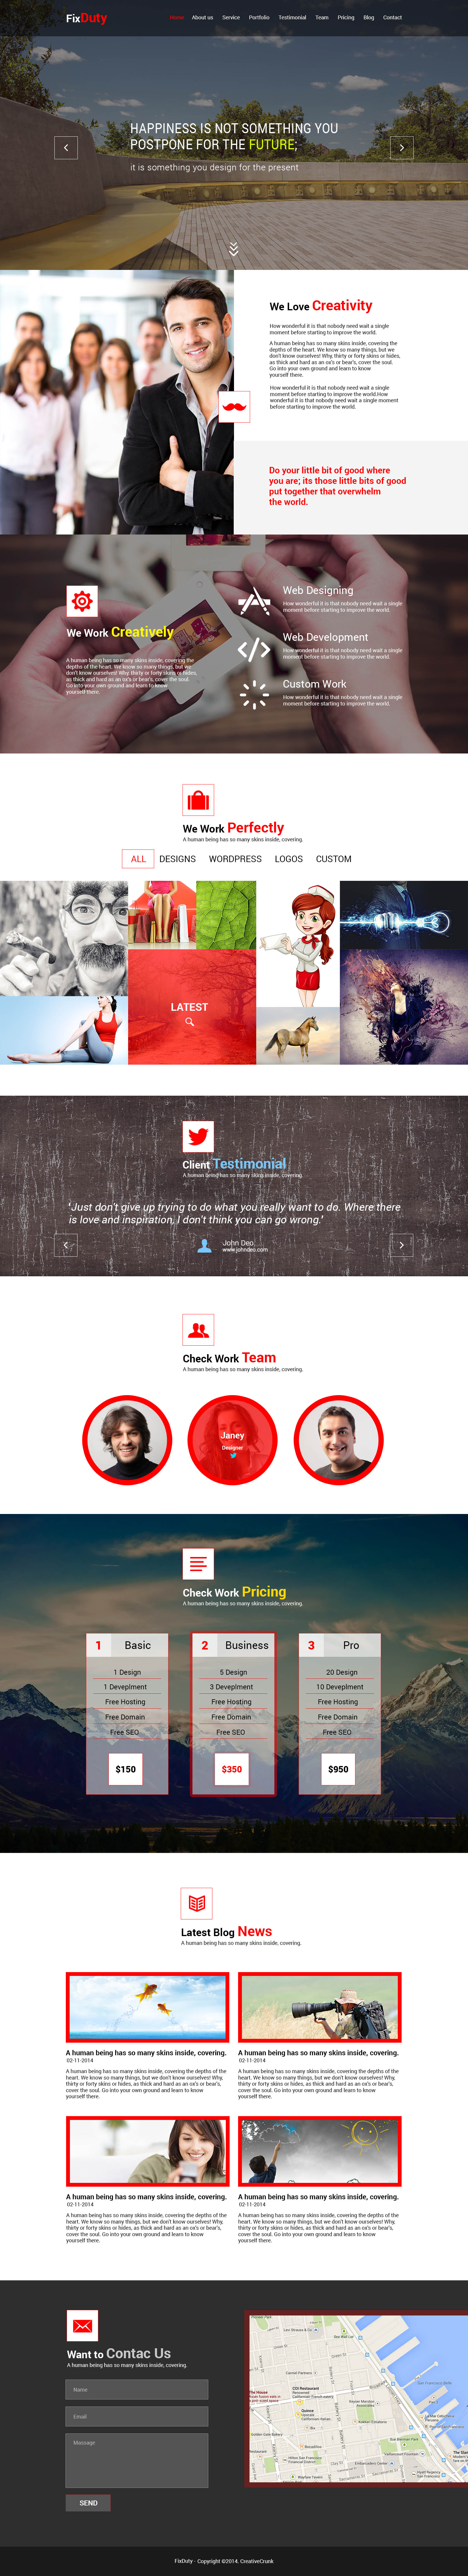 Parallax Website Template Fixduty  Parallax Psd Template  Preview  Web Inspi & Ressources